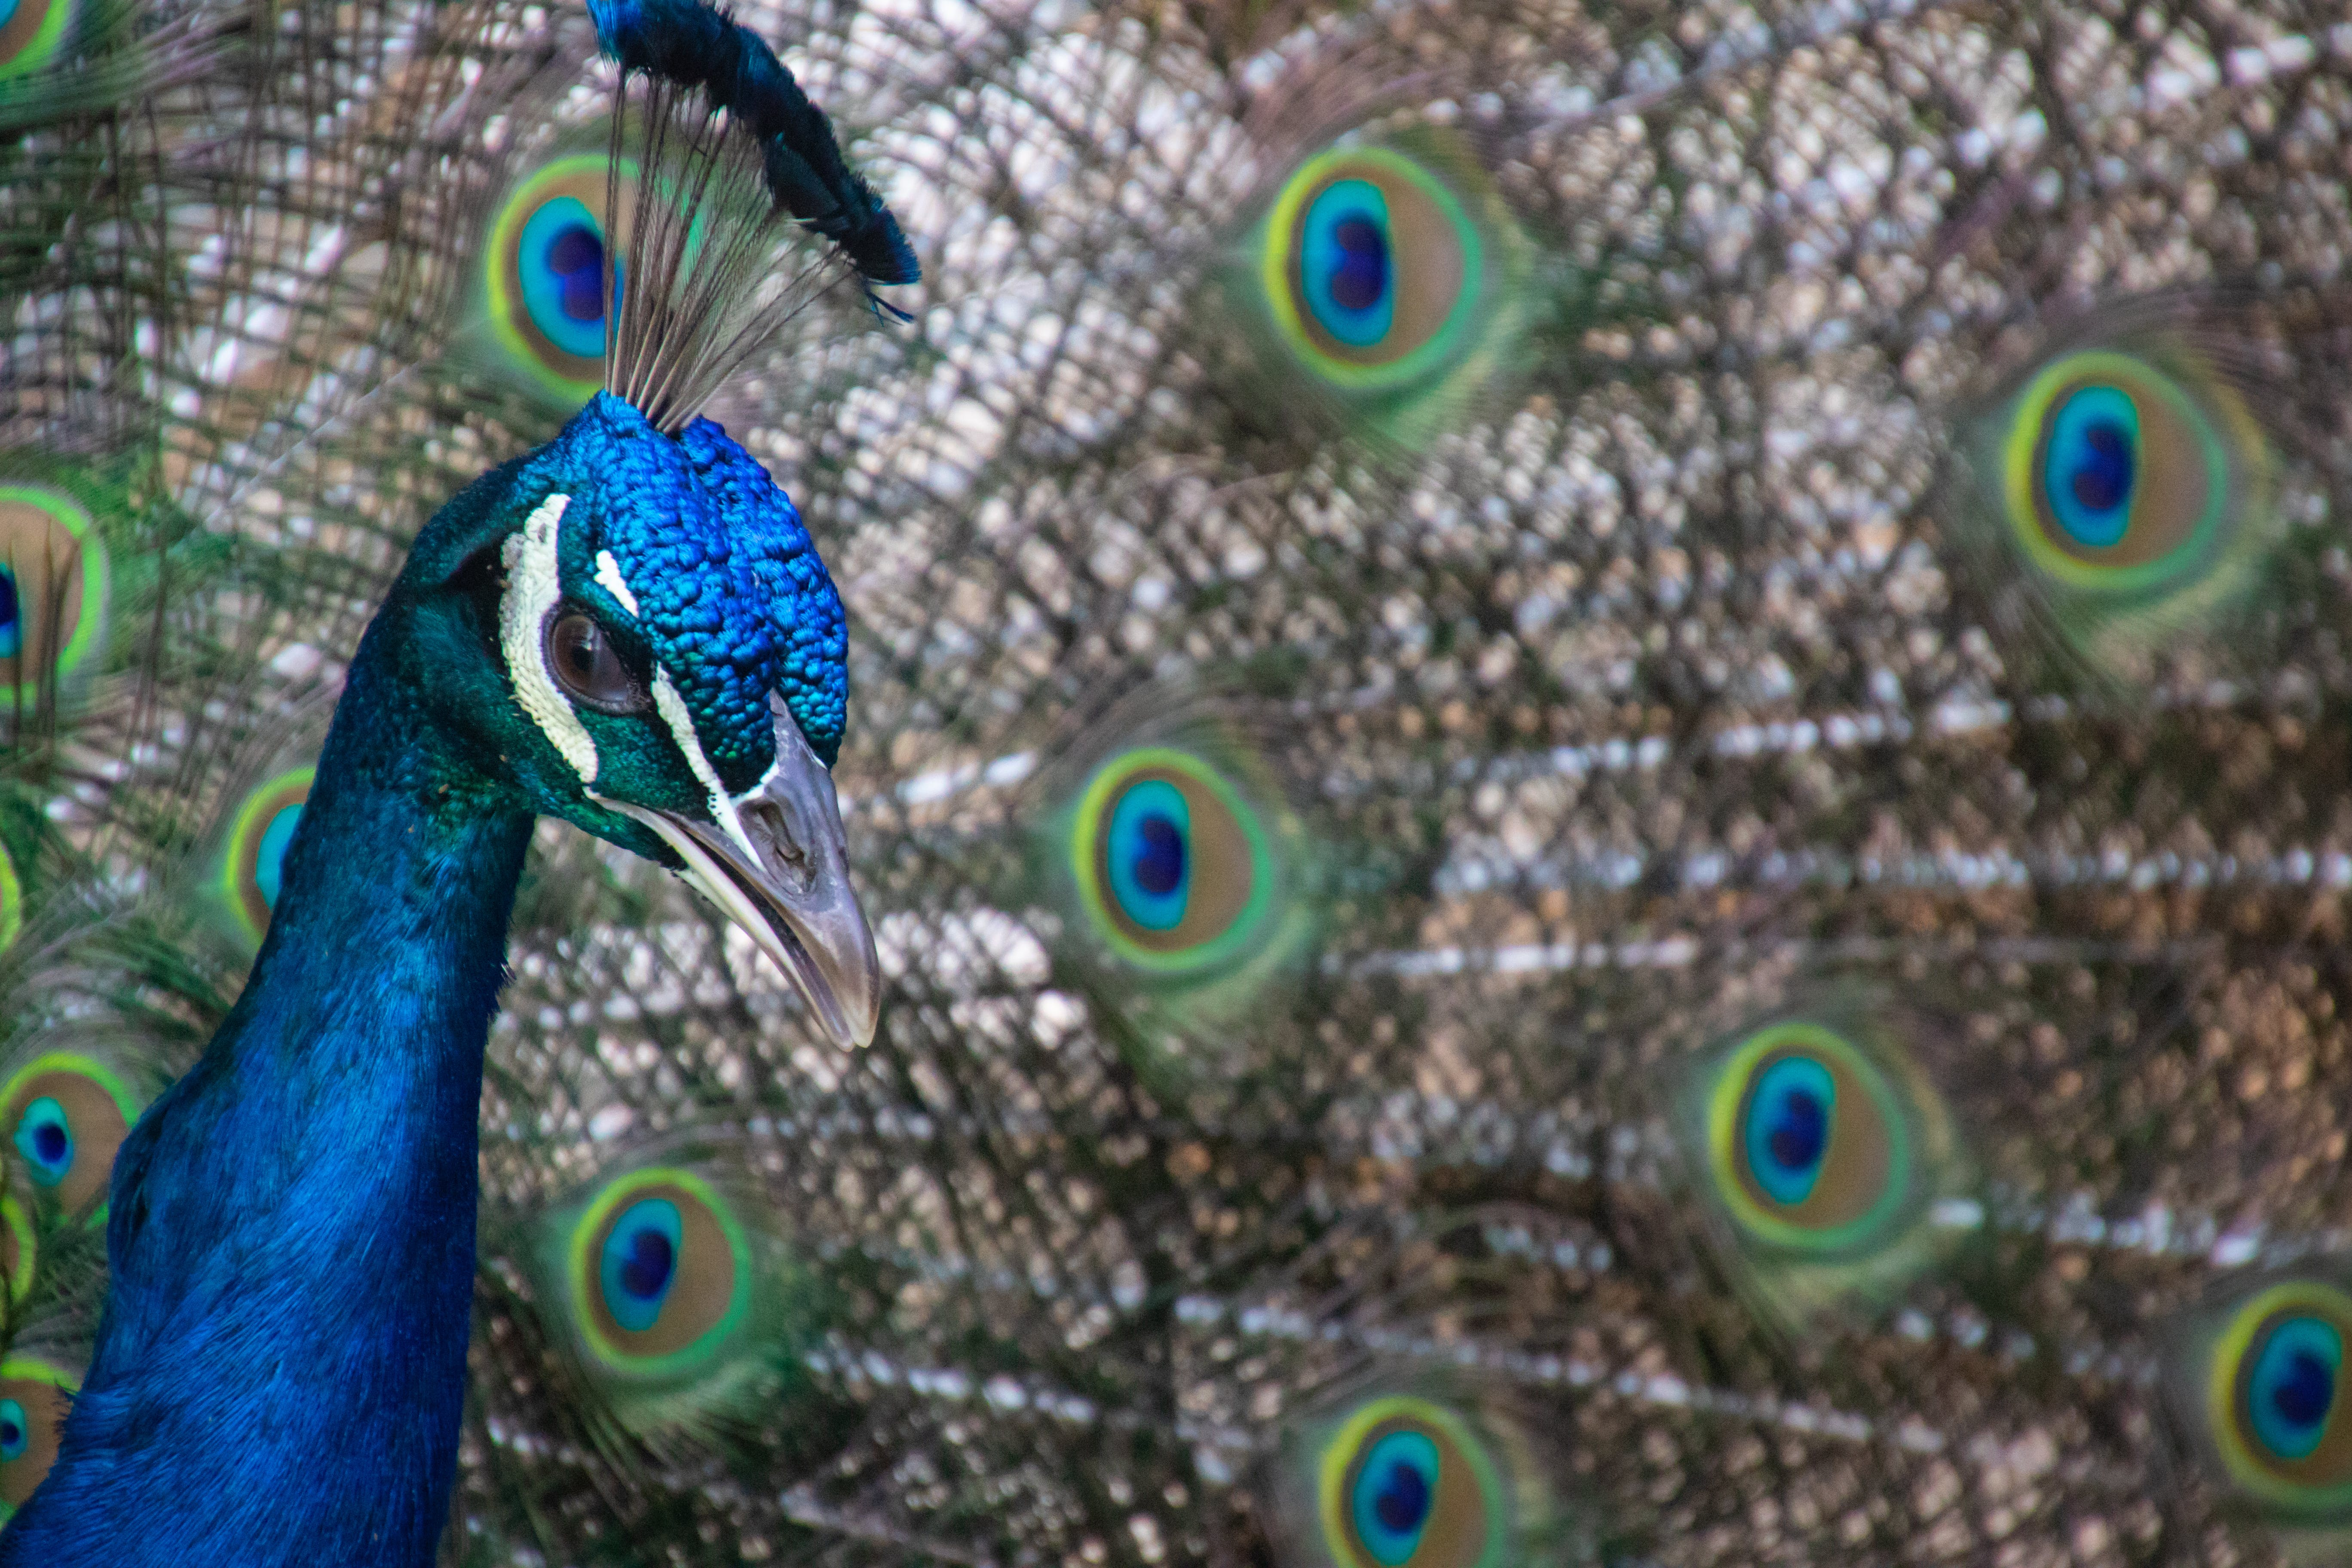 Blue and Green Peacock Close-up Photography